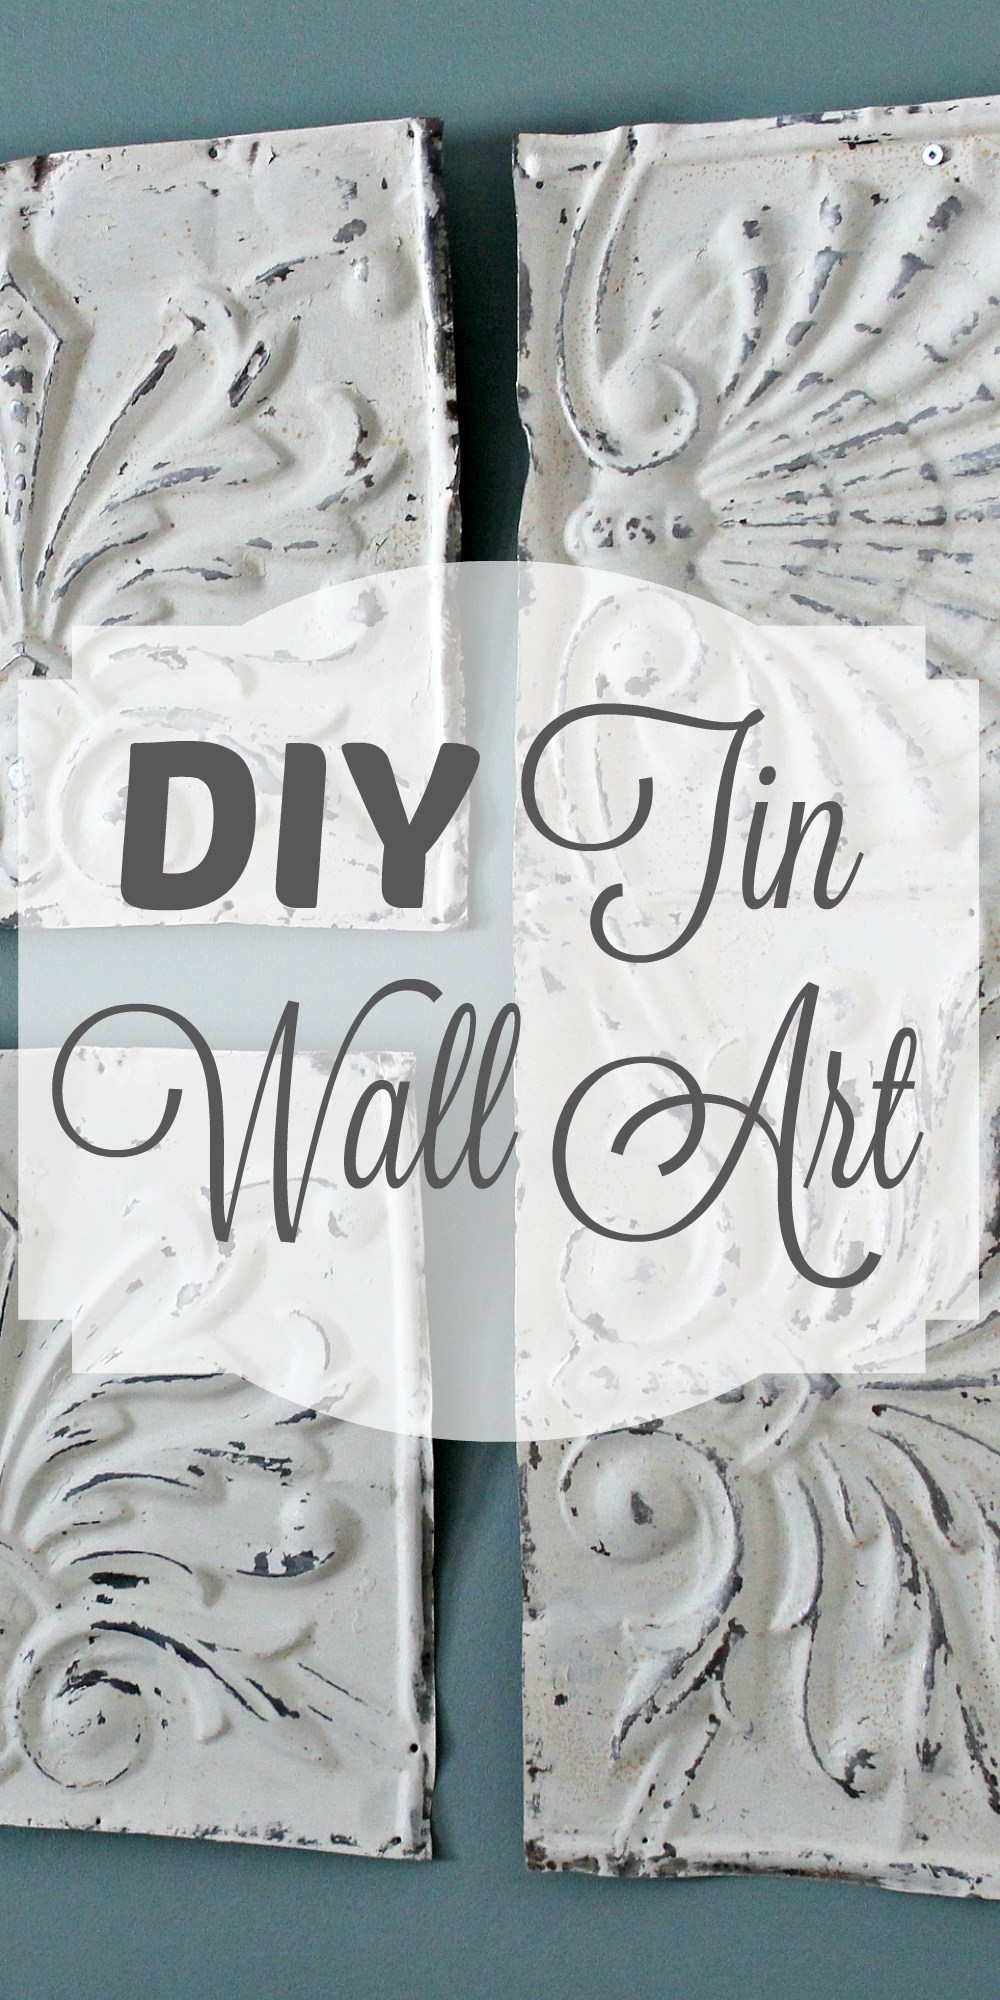 Diy Tin Wall Art! – Theprojectpiletheprojectpile With Regard To Newest Tin Wall Art (Gallery 1 of 20)